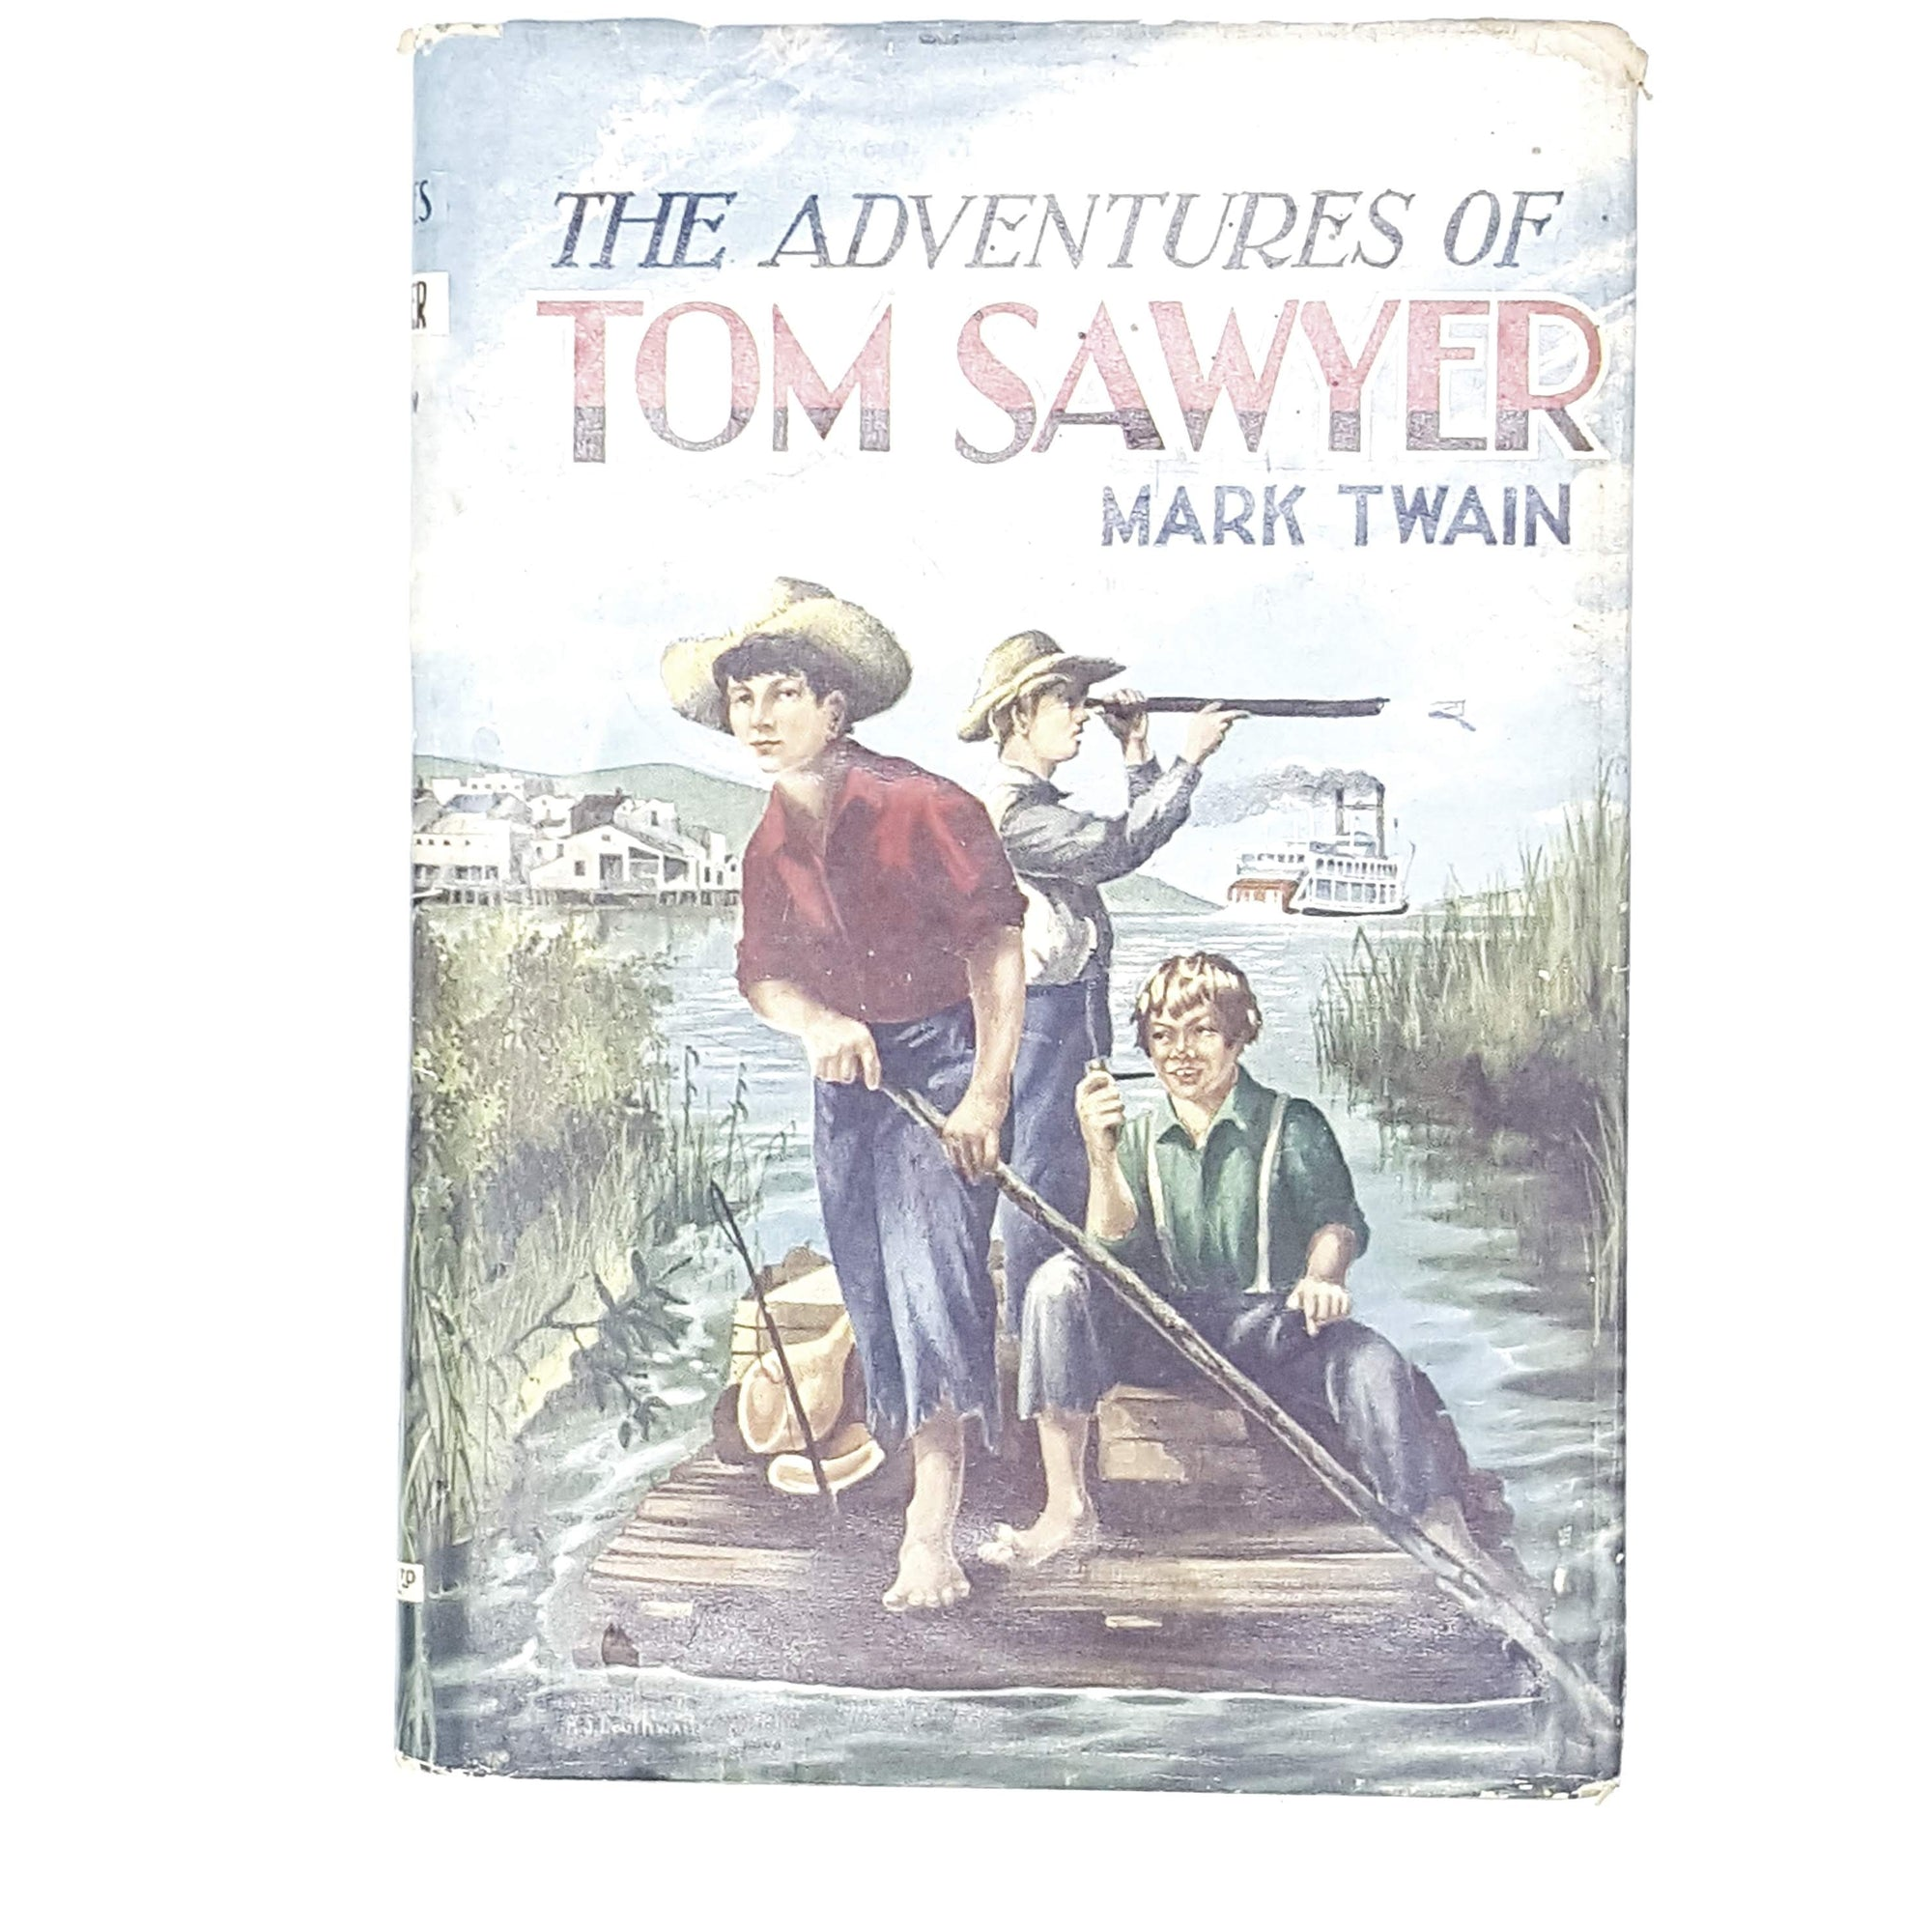 Mark Twain's The Adventures of Mark Sawyer Dean & Son ltd